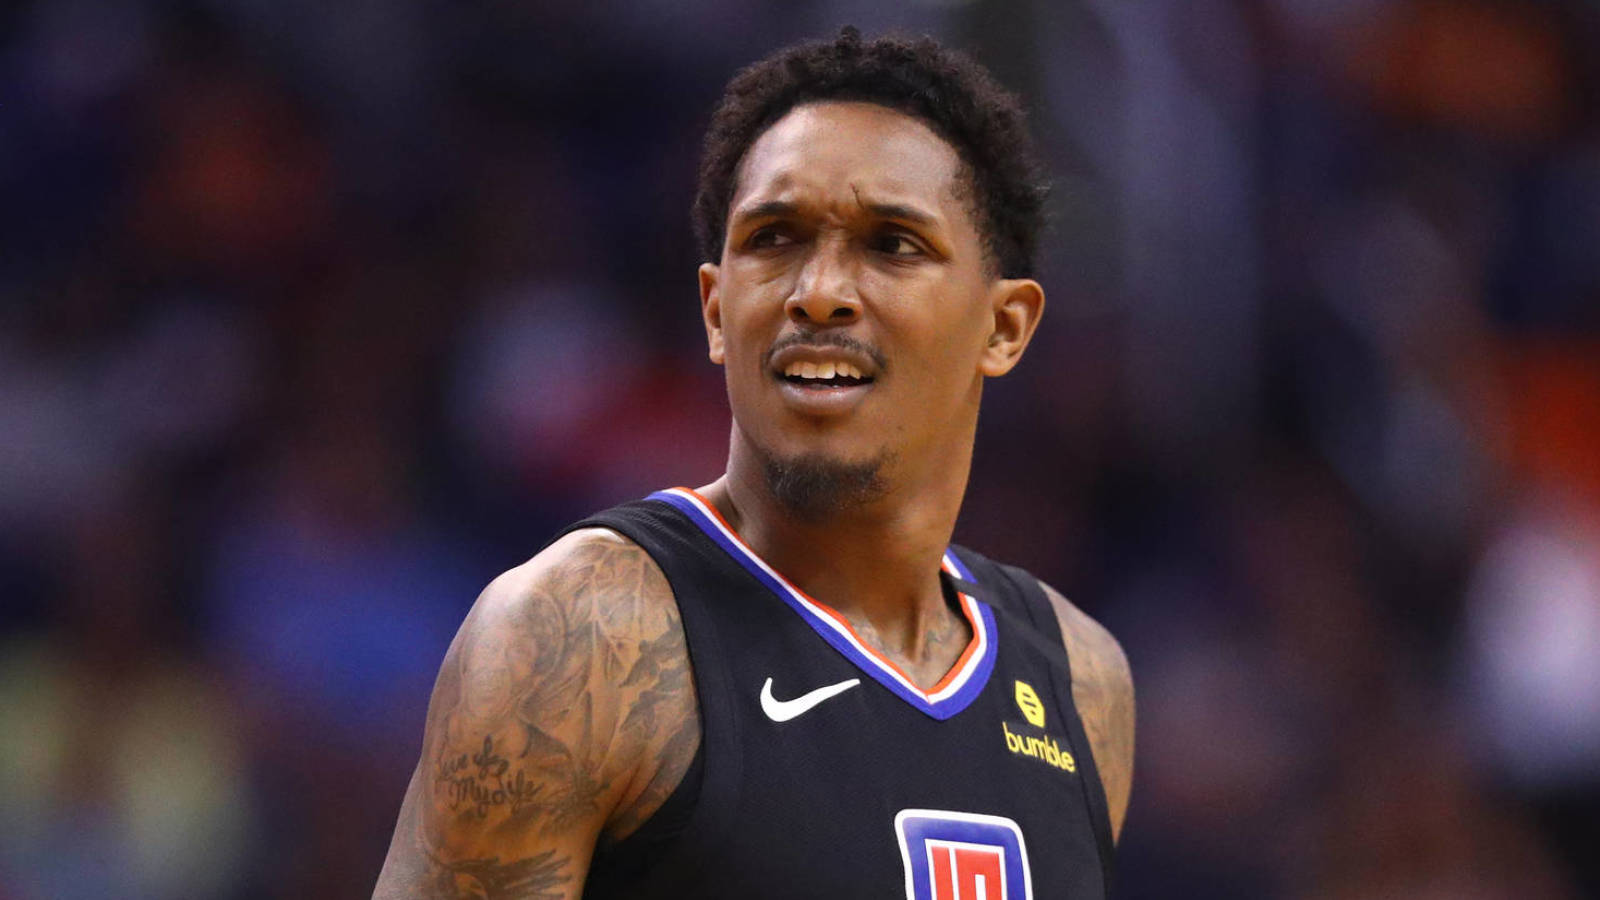 Lou Williams paid for dances from women at strip club